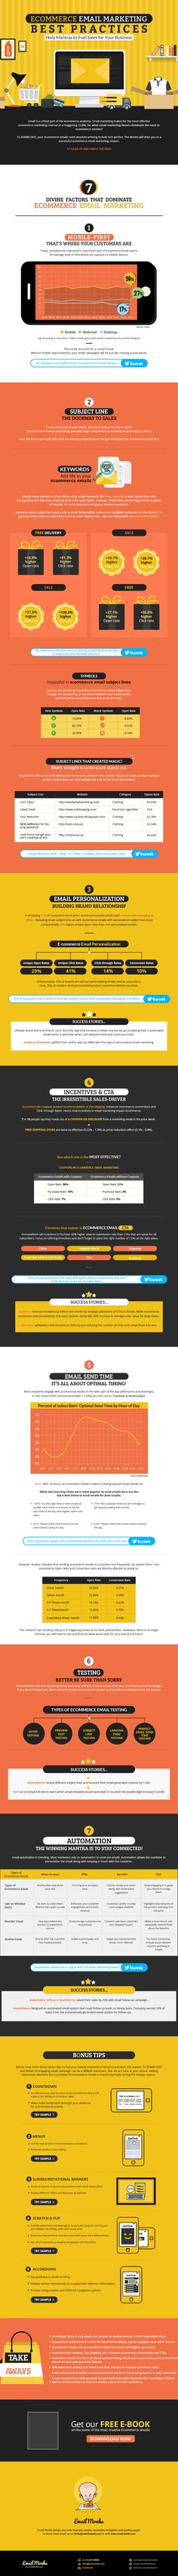 eCommerce Email Marketing Best Practices [Infographic] | Social Media Today